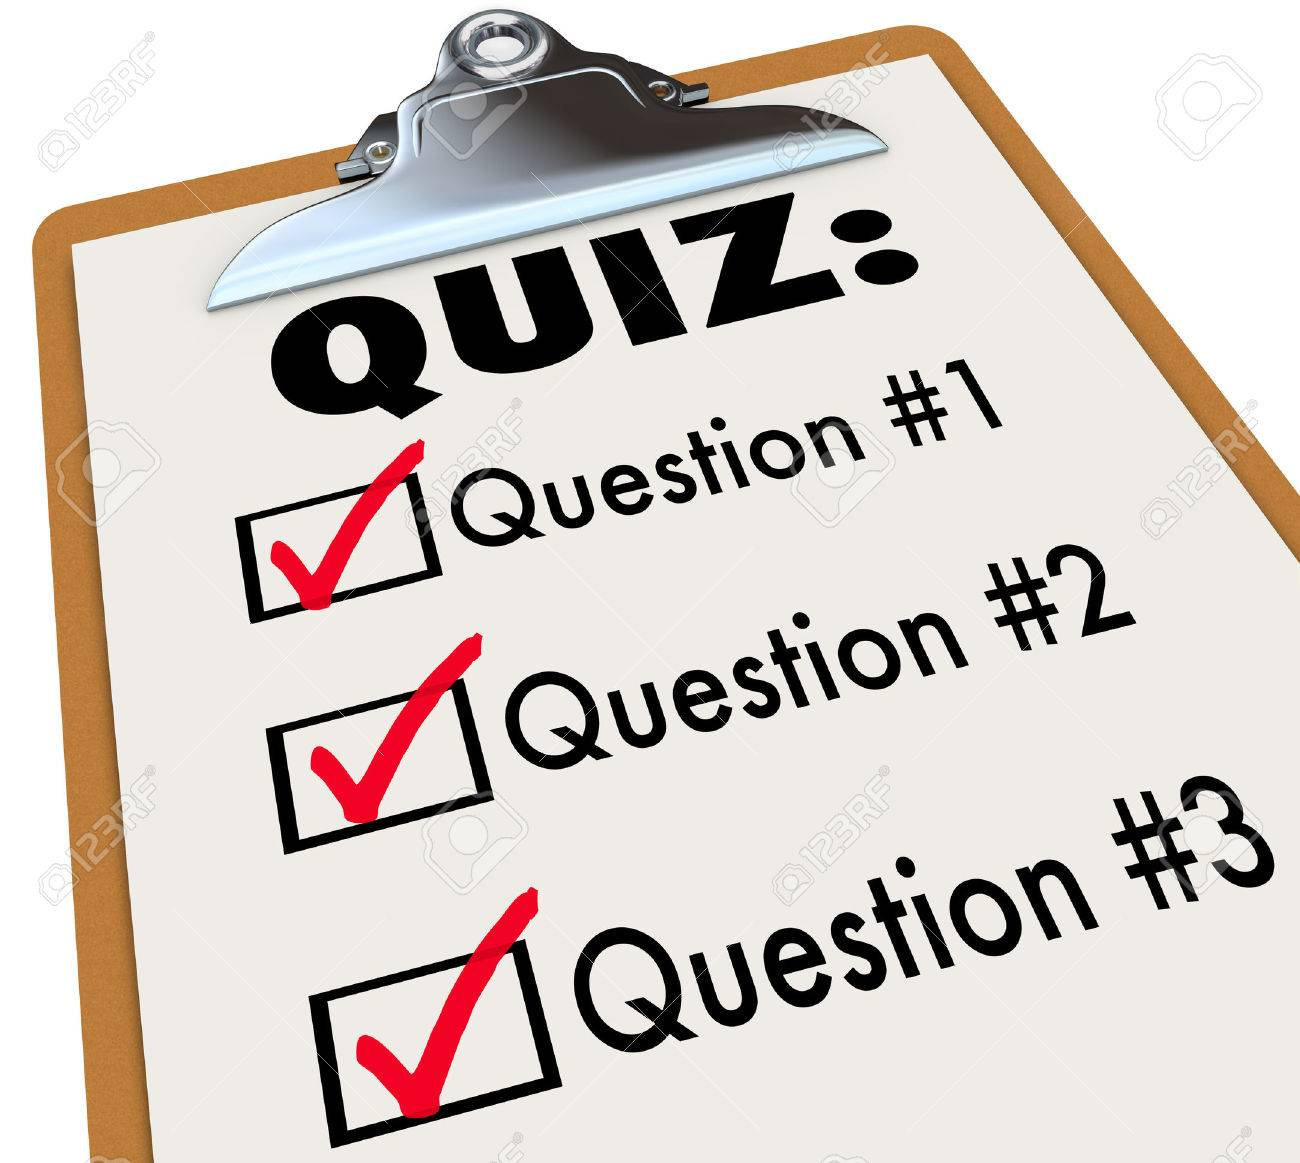 Questions And Answers Clipart | Free download best Questions And